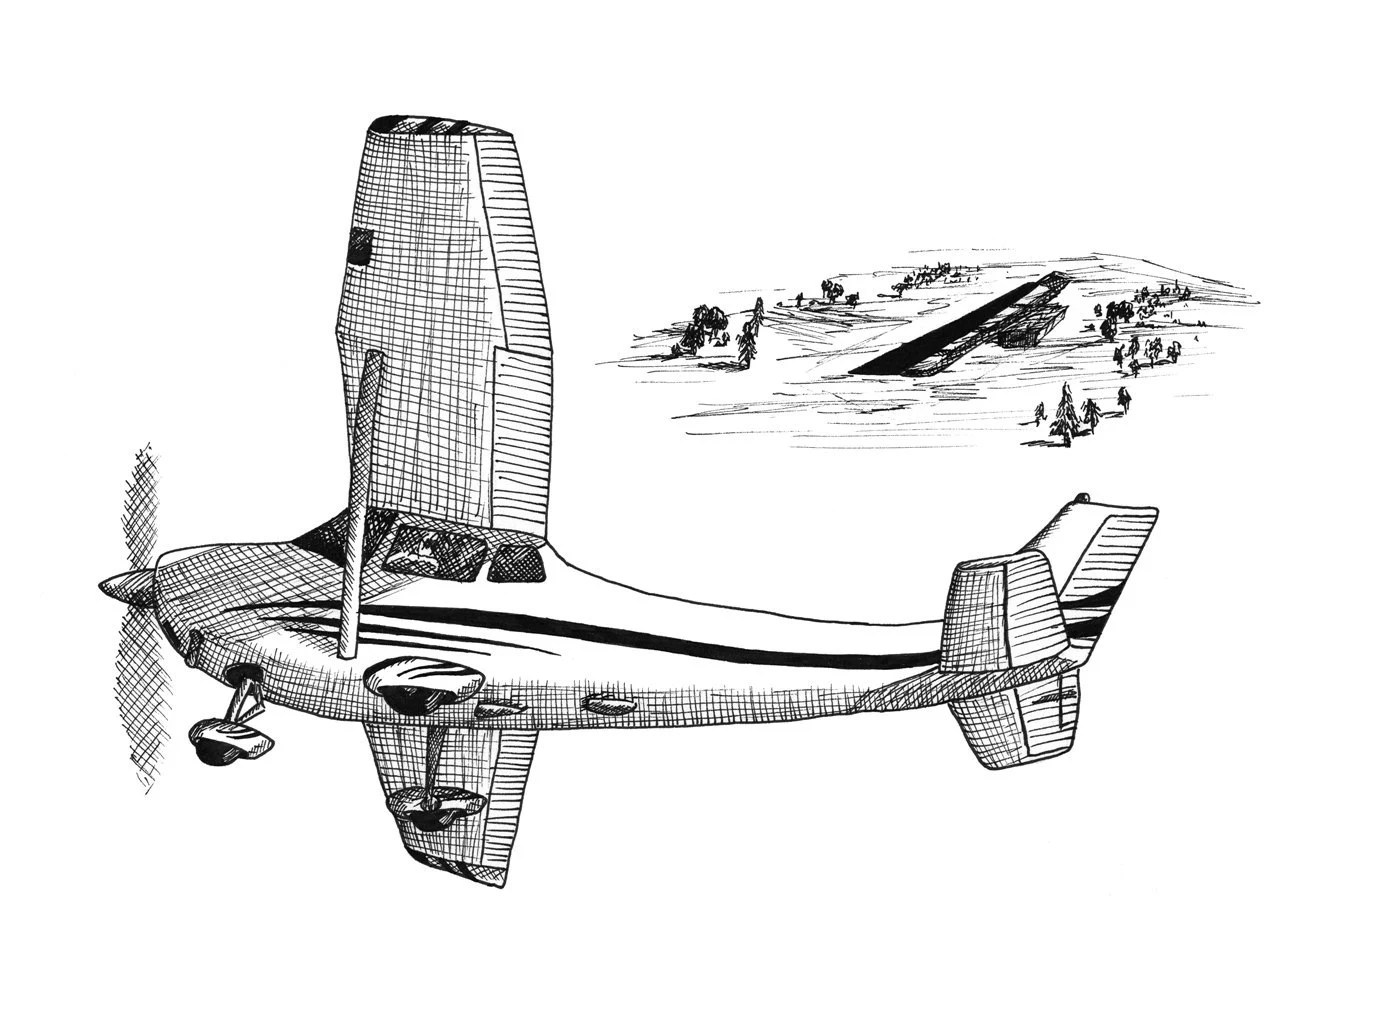 Family Tie-Downs Aviation Airplane Drawing Print